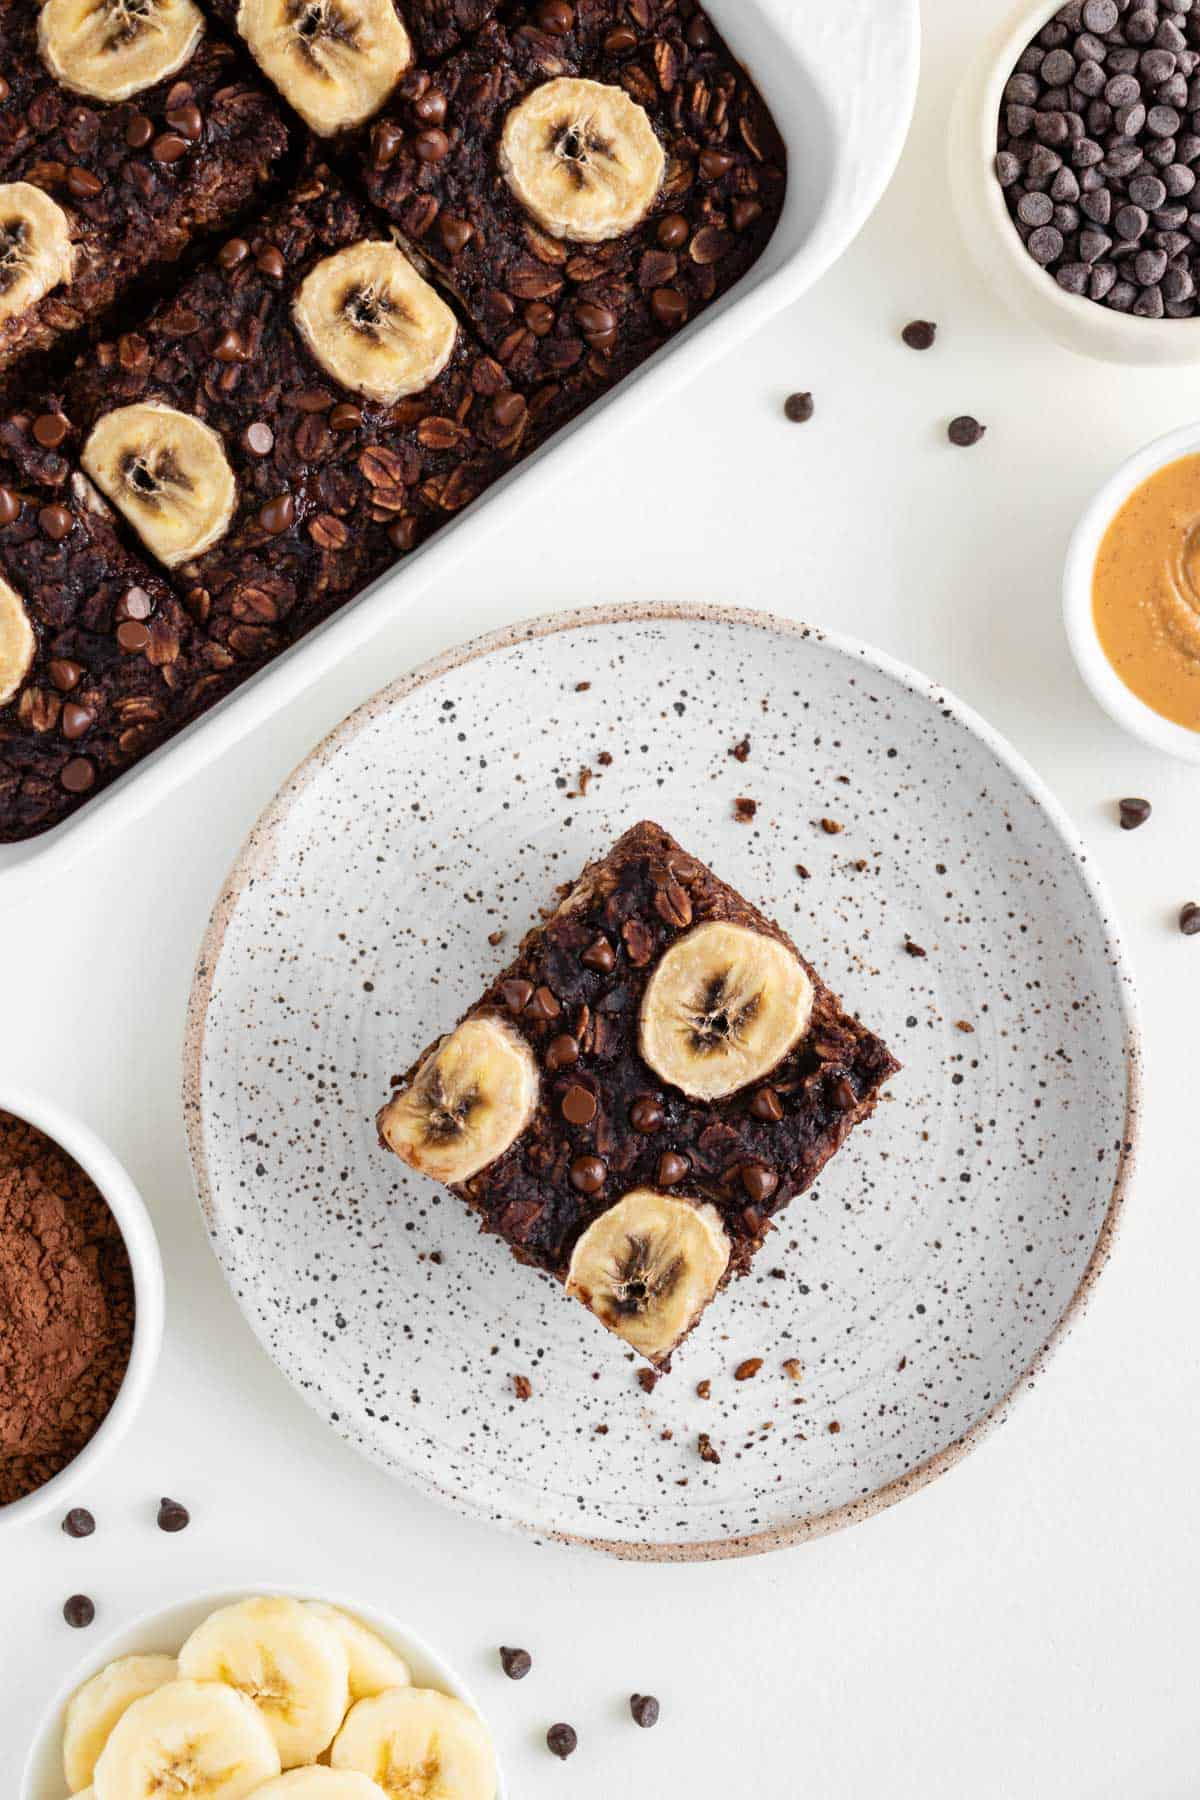 a slice of chocolate baked oatmeal on a speckled ceramic plate surrounded by peanut butter, cacao, and a tray of oatmeal bake